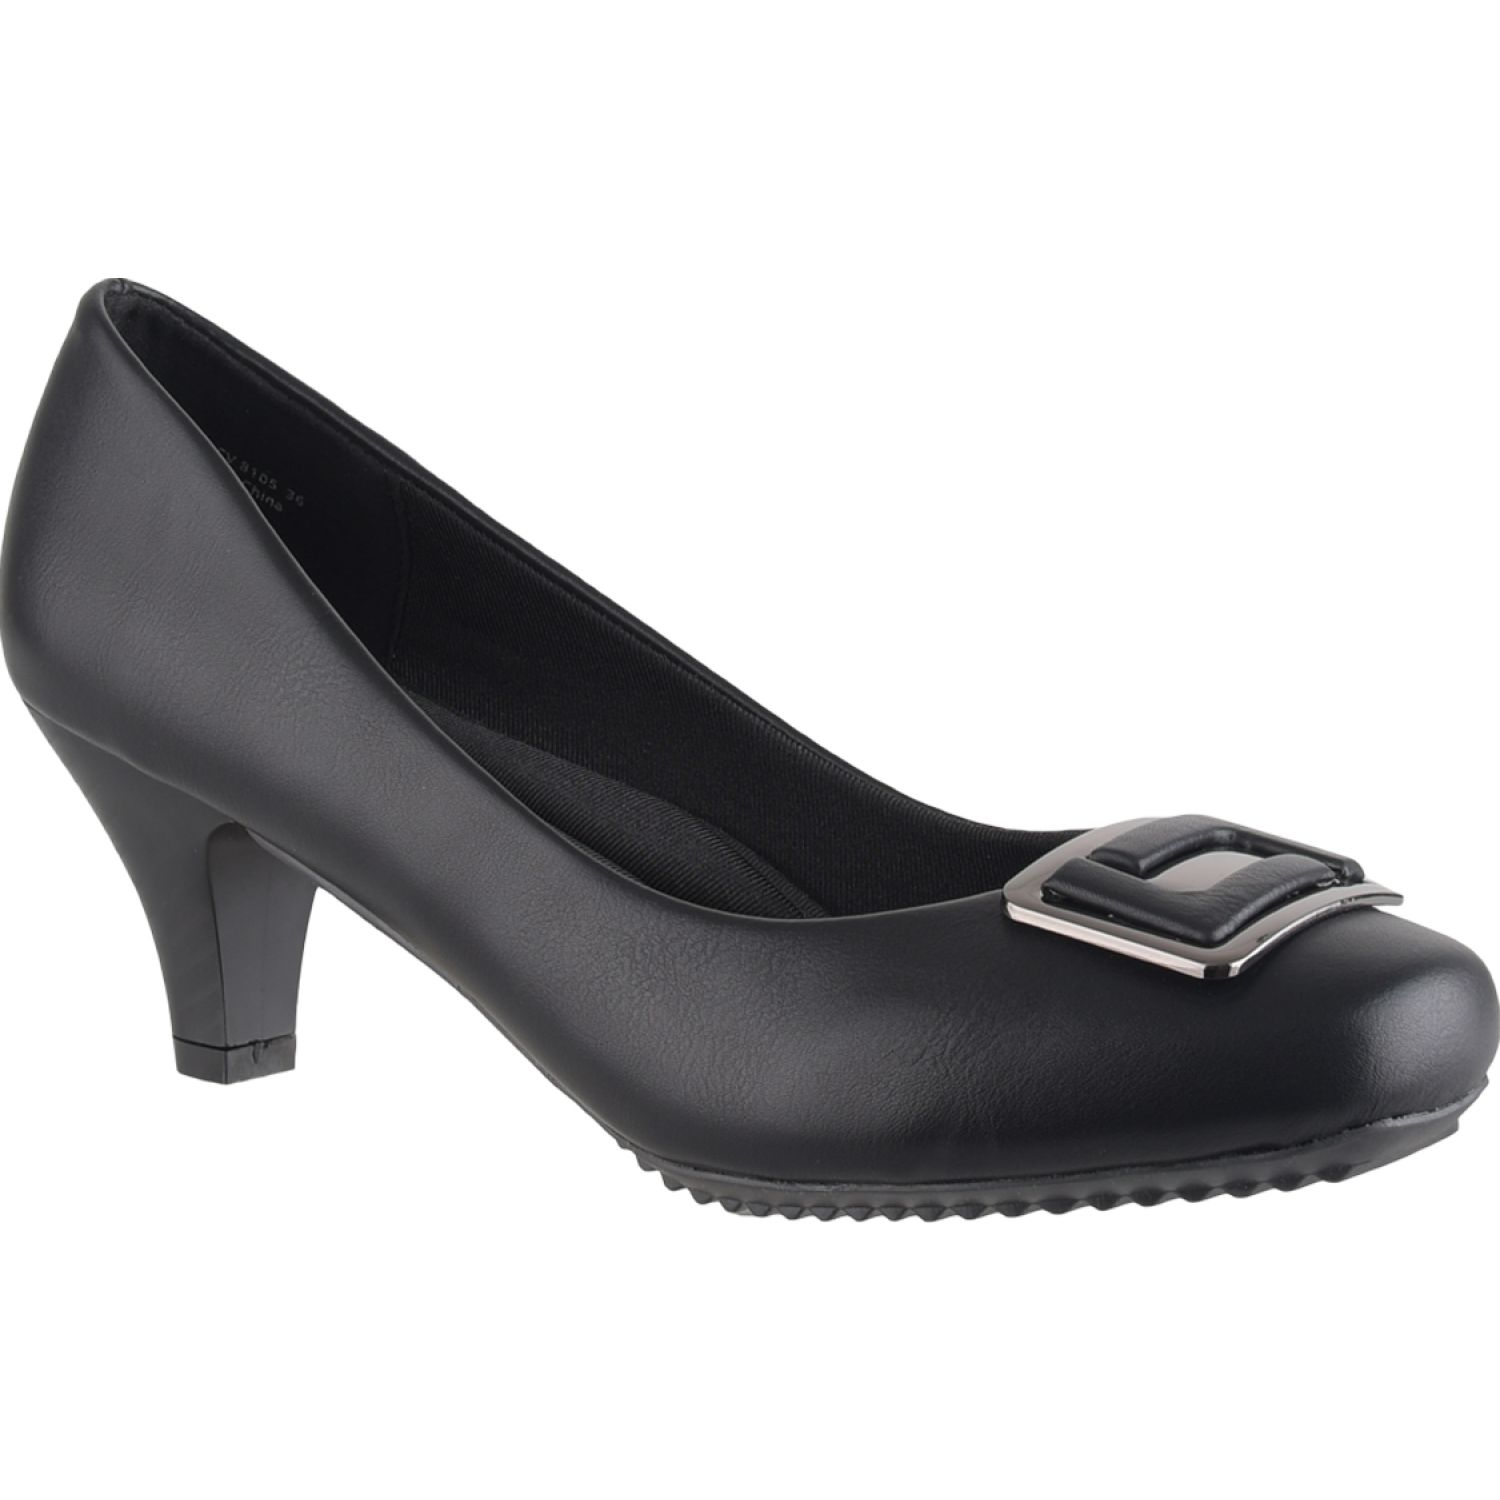 Platanitos Cv 8105 Negro Estiletos y pumps